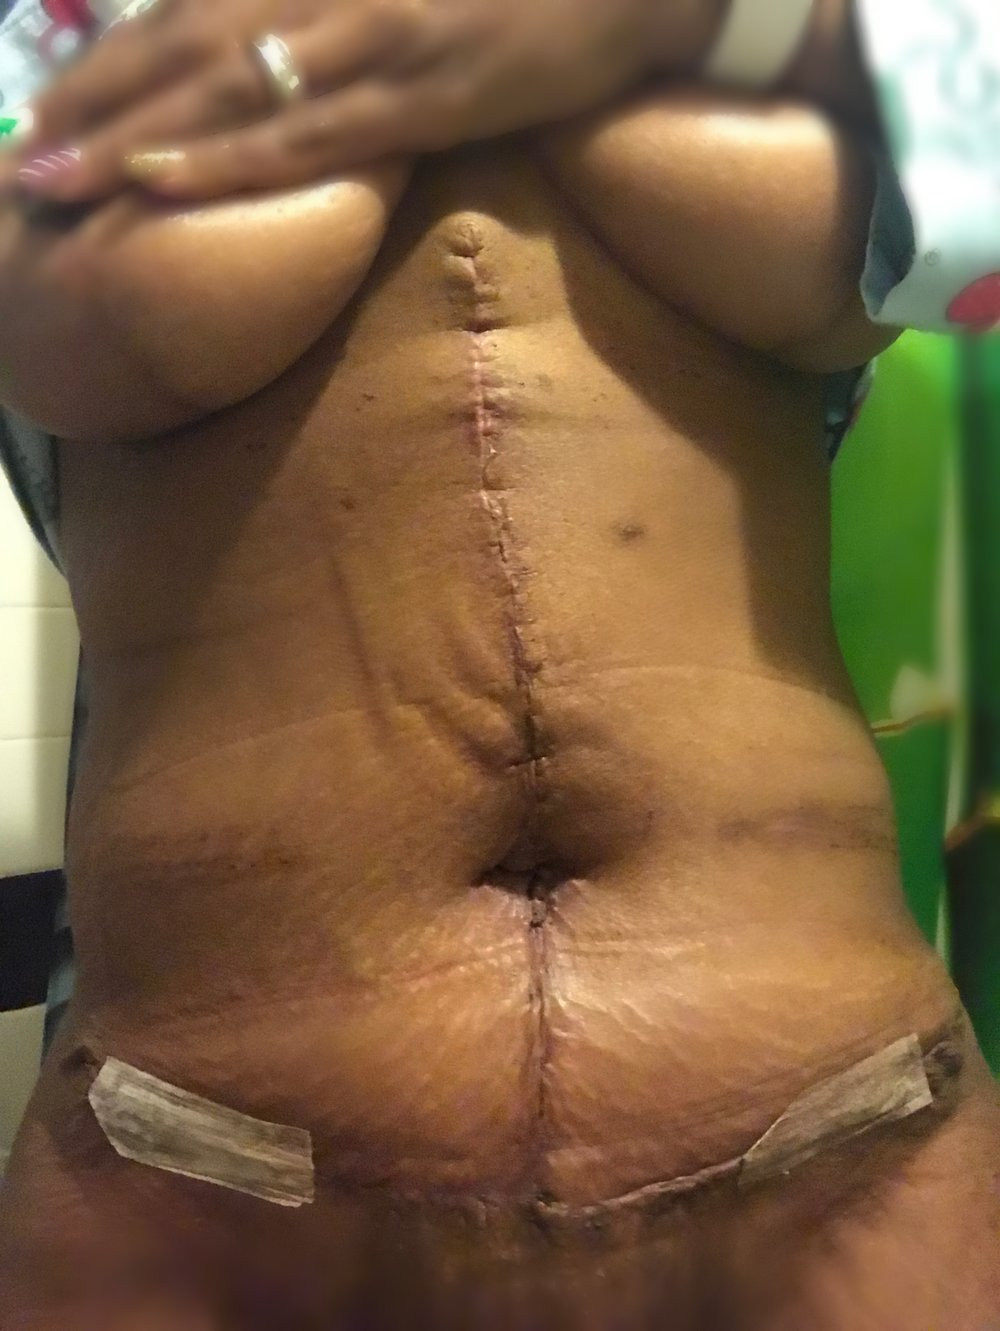 2 weeks after Tummy Tuck